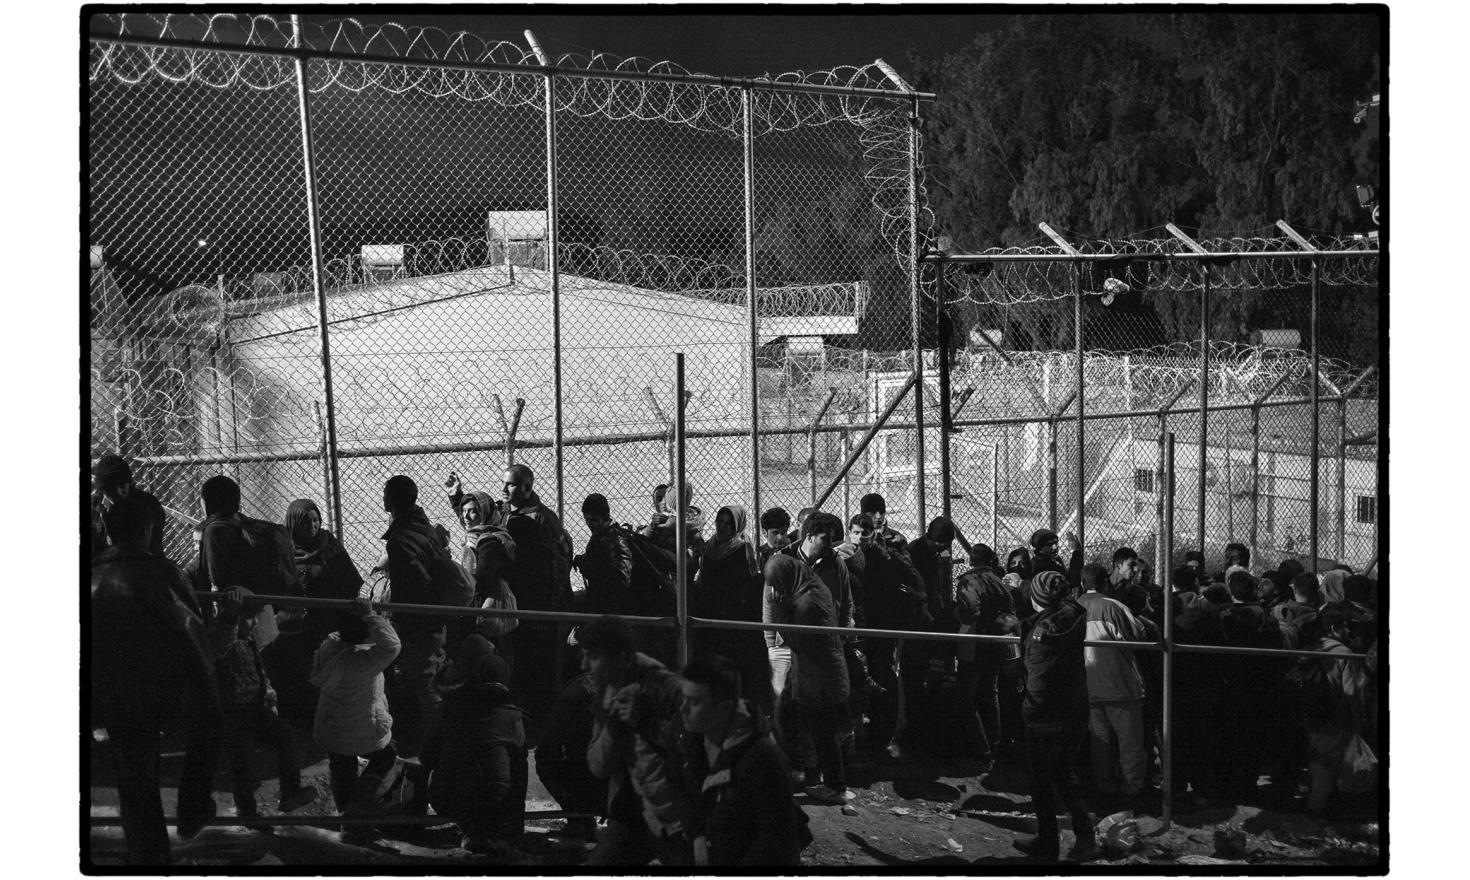 Lesbos, Greece. Moria is the first 'hotspot' centre for registering their arrival in Europe. It is also where they are first separated according to nationality.